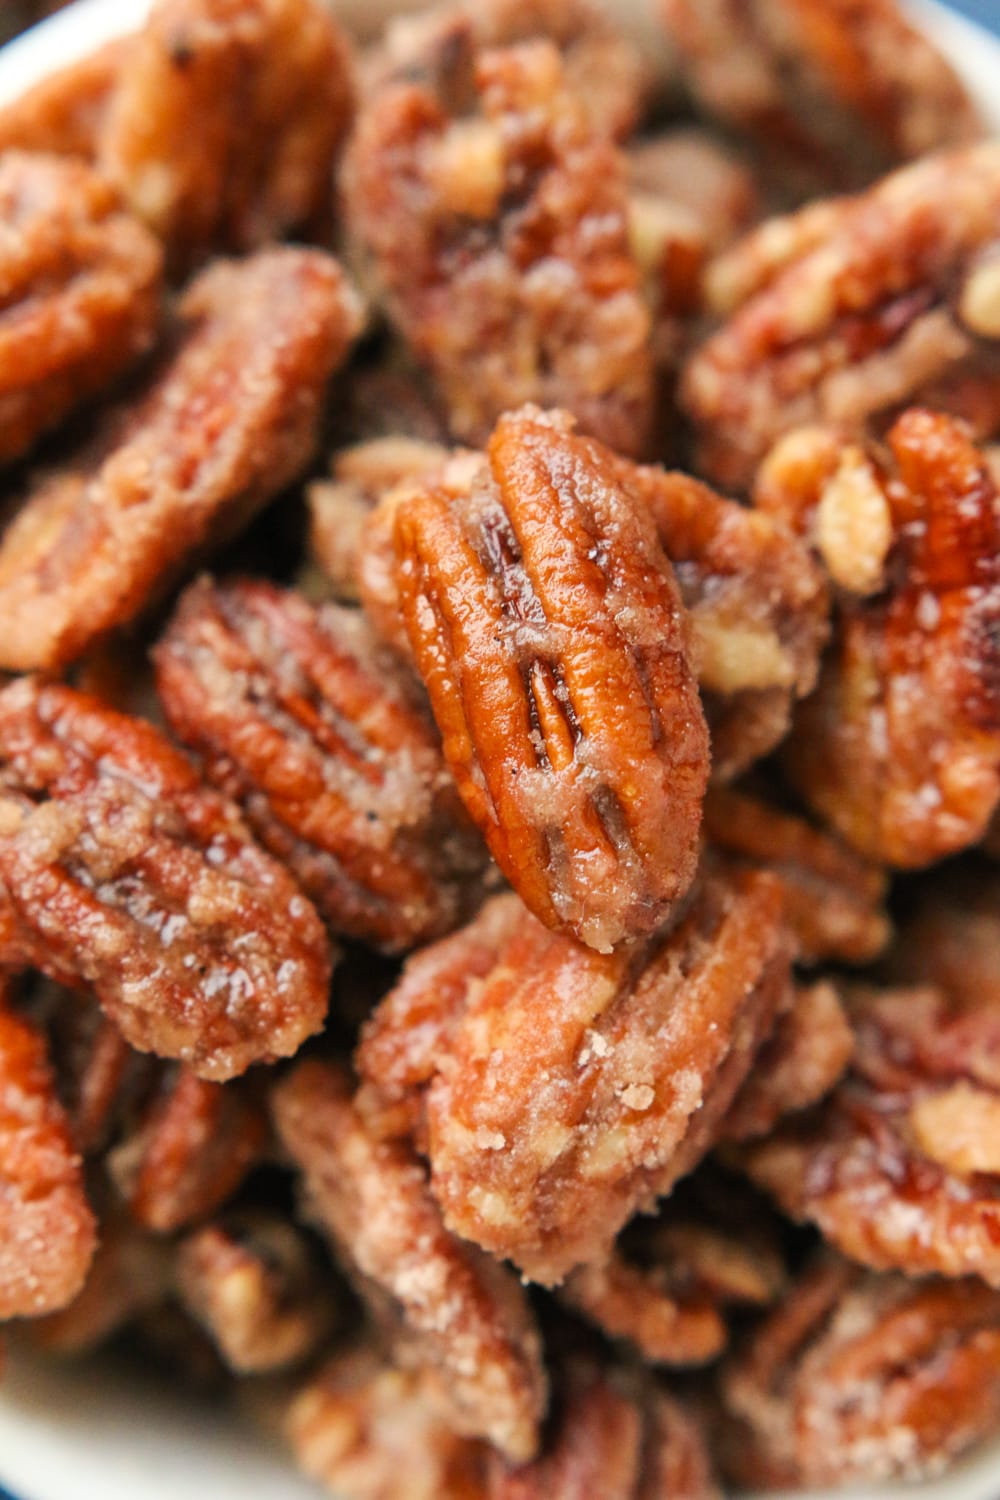 Candied pecans piled on top of one another.